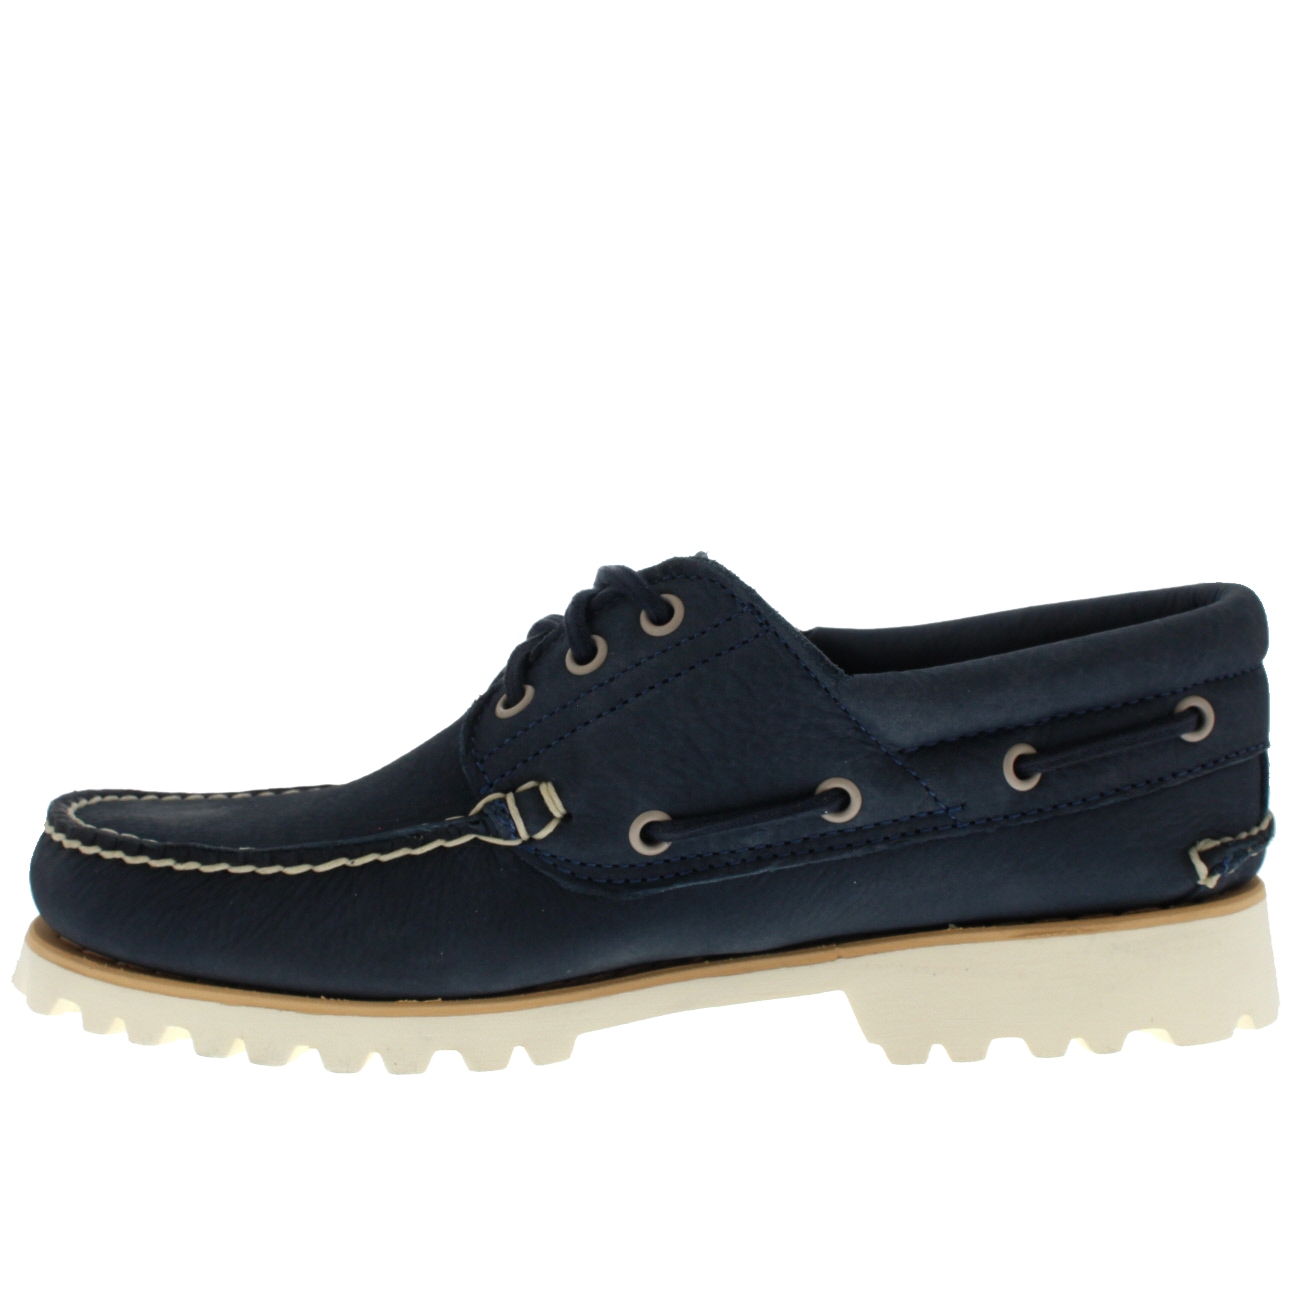 9750fea178e Details about Mens Timberland Chilmark 3 Eye Hand Casual Leather Moccasins  Shoes US 7.5-13.5